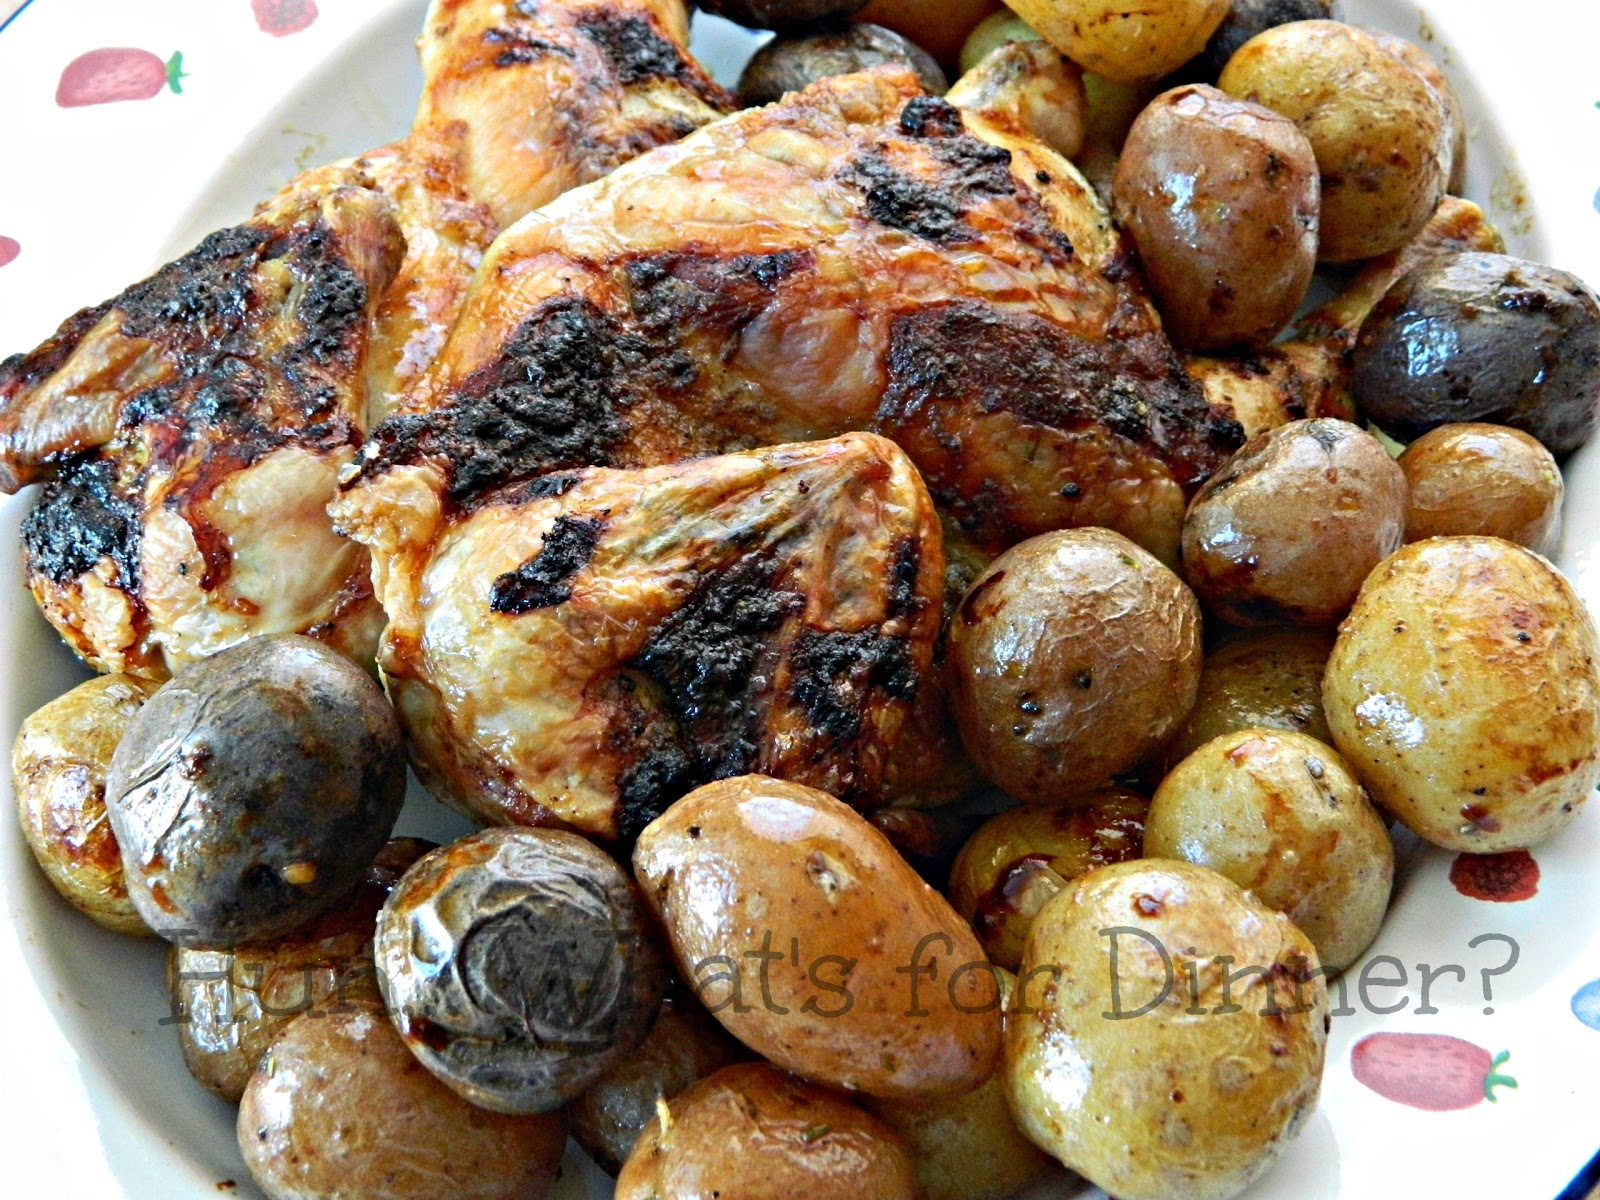 Hun... What's for Dinner?: Basic Whole Roast Chicken- Roasting a whole chicken is an easy cooking method anyone can master.